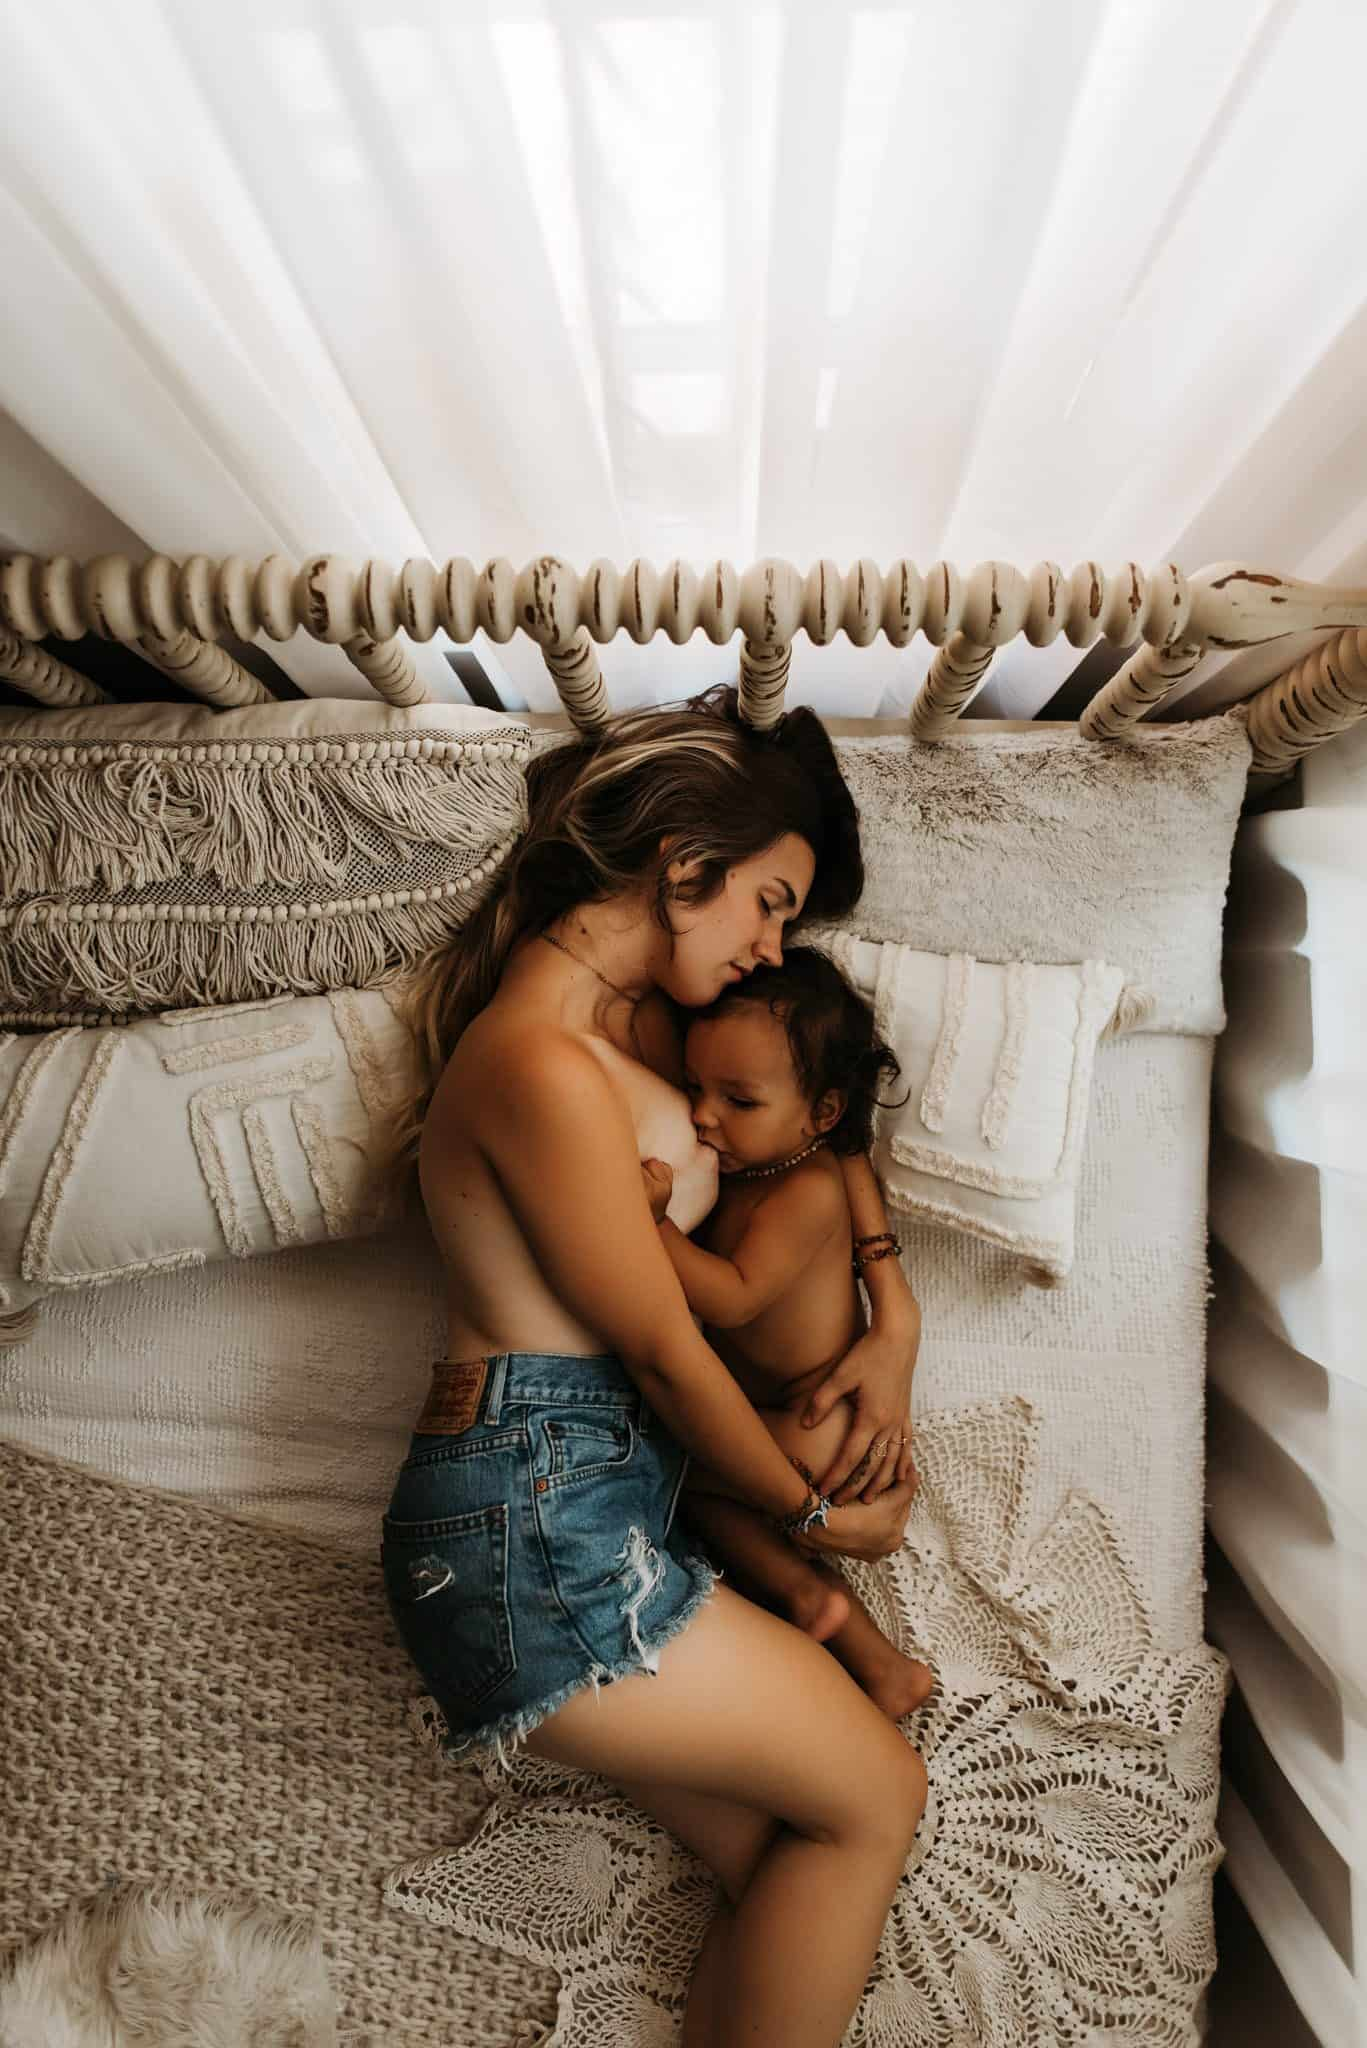 The Most Beautiful Breastfeeding Photos Of 2019